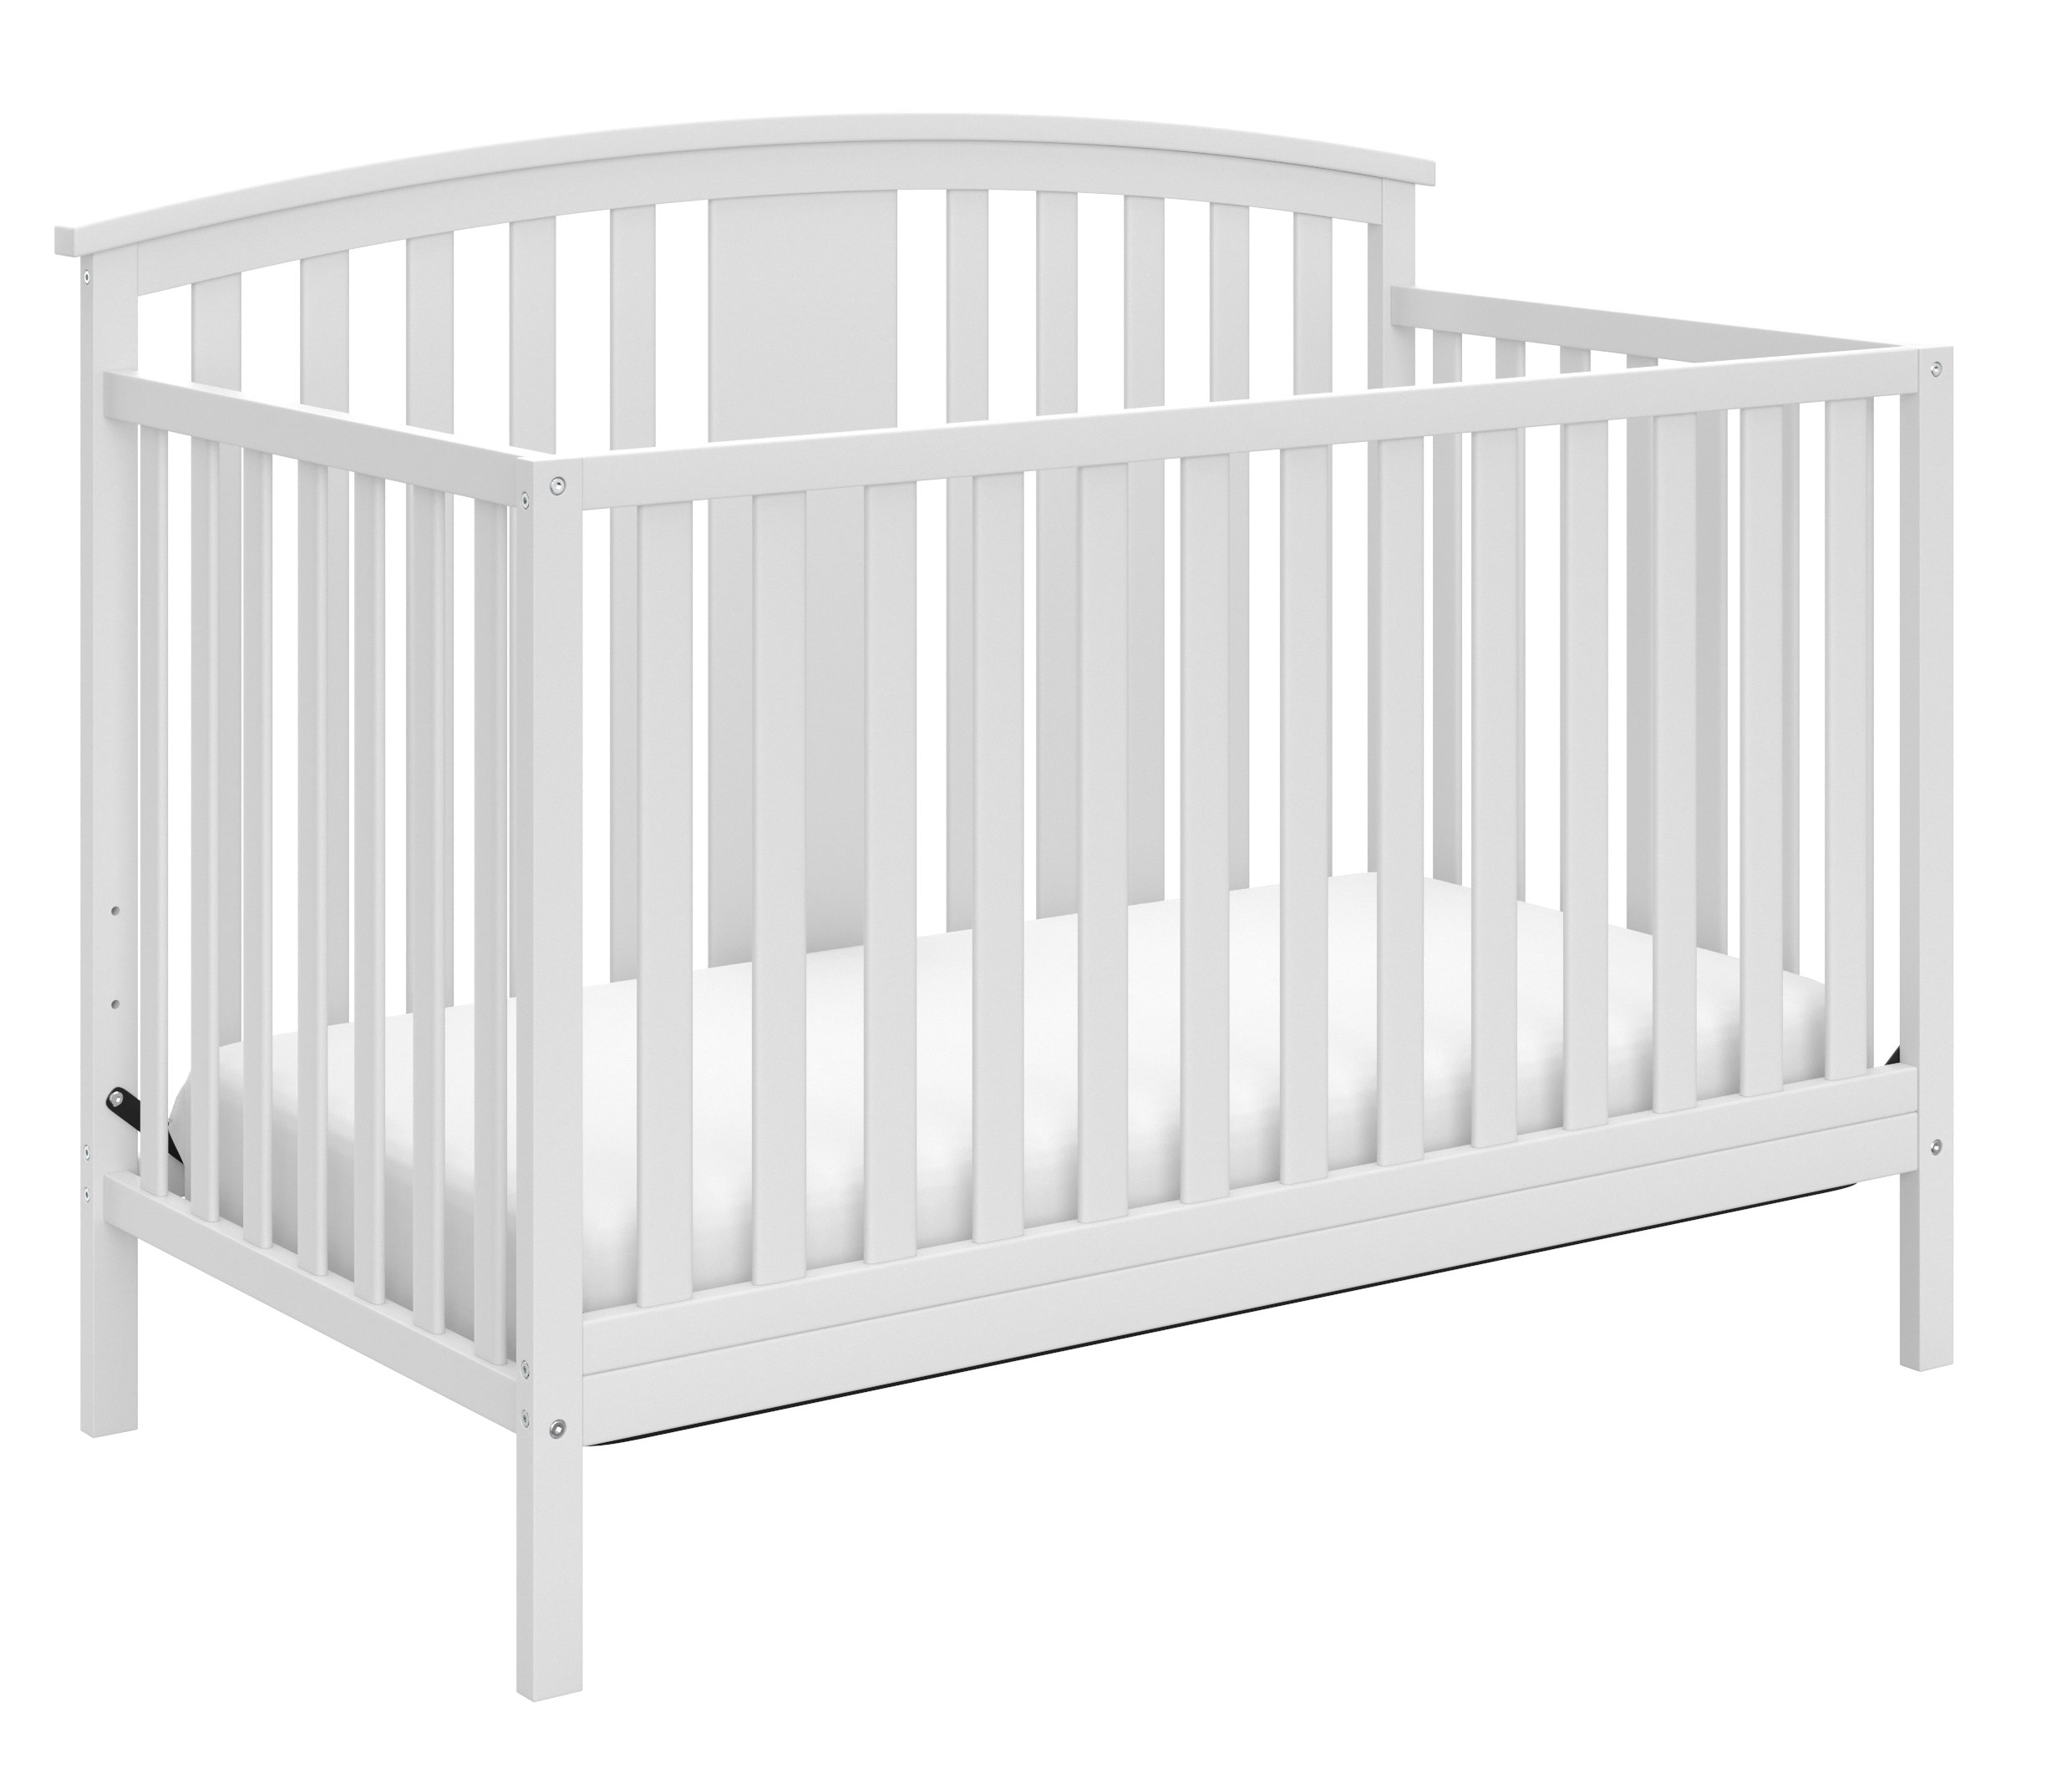 Storkcraft Greyson 4-in-1 Convertible Crib, White Easily Converts to Toddler Bed, Day Bed or Full Bed, 3 Position Adjustable Height Mattress by Storkcraft